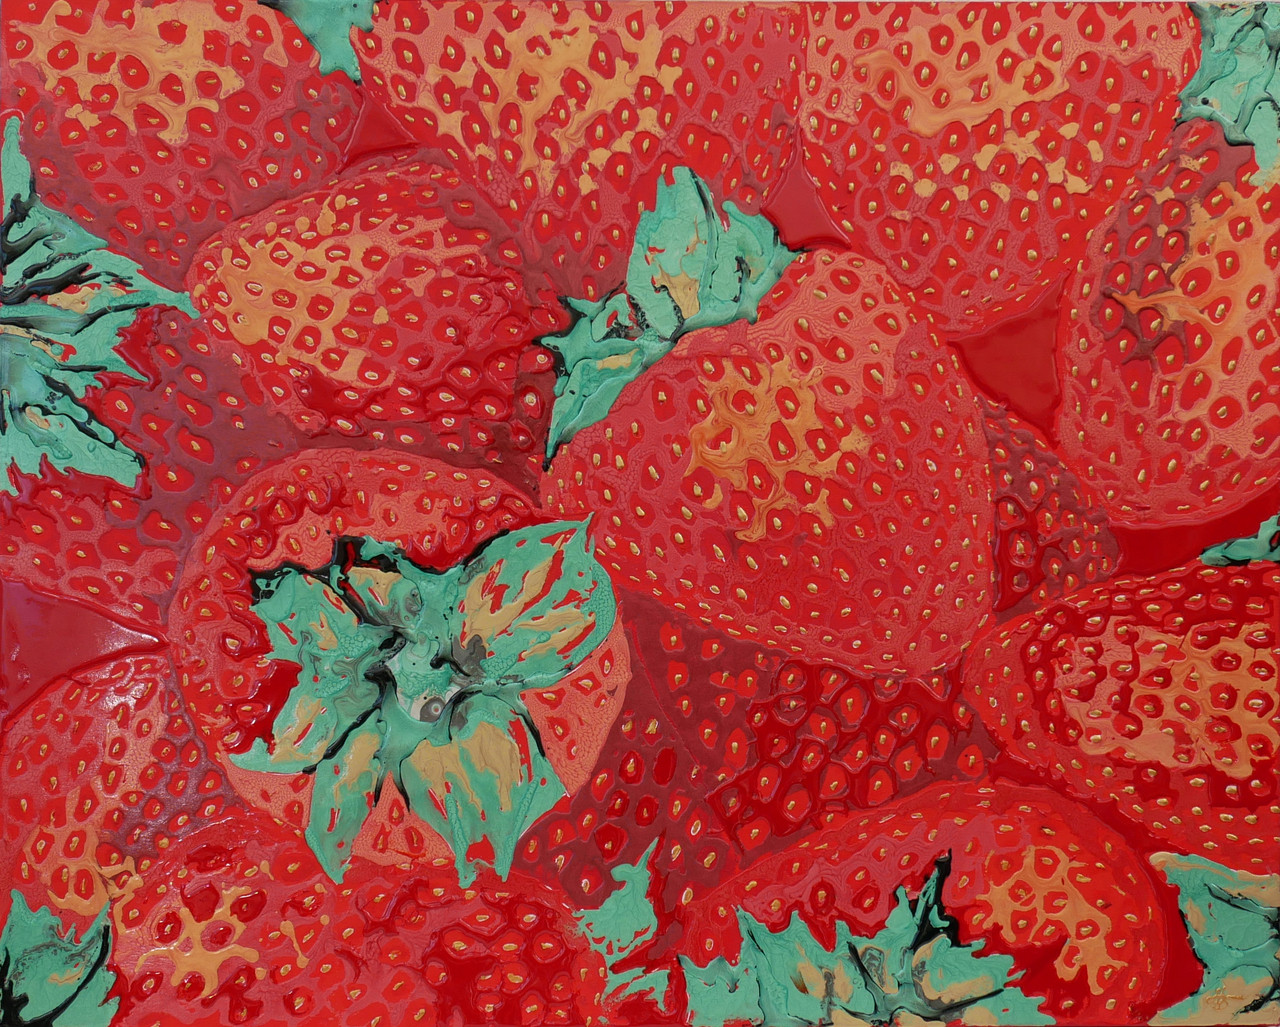 Strawberries painting in red with resin art